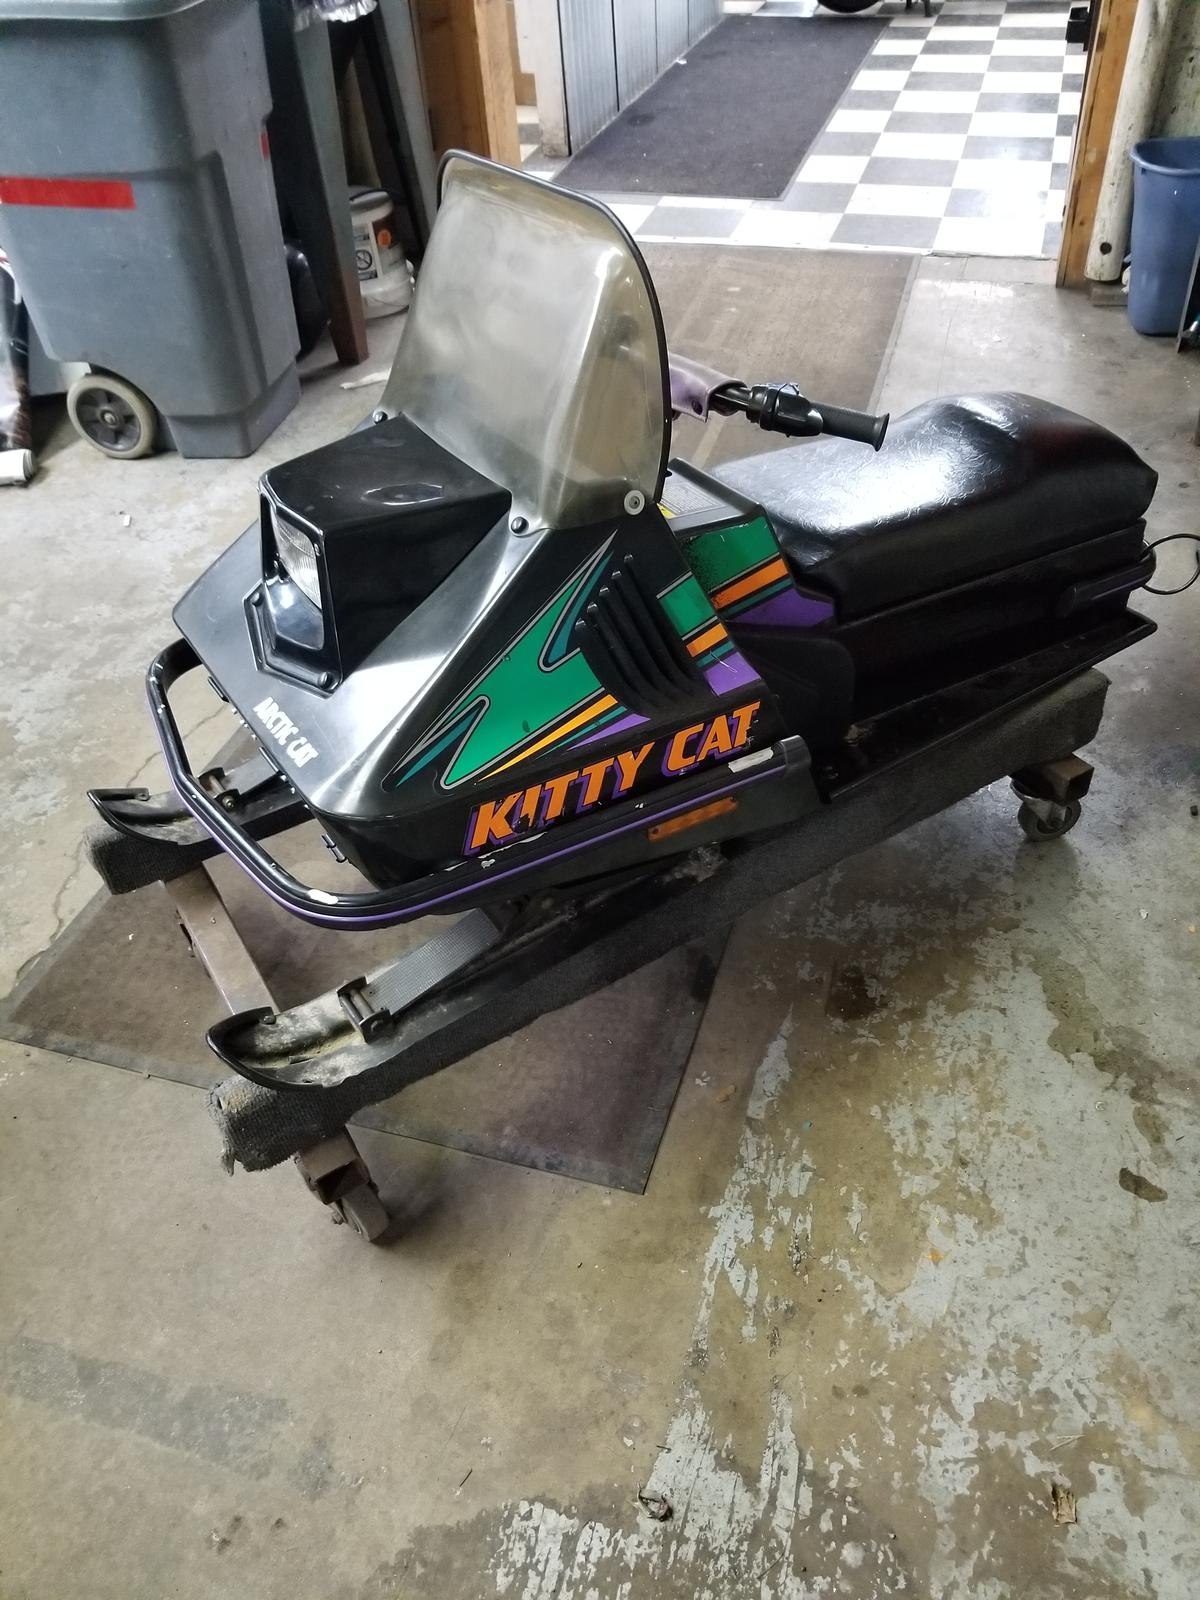 89 1996 Articcat Arctic Cat 550 Cougar Zrt 600 Motorcycle Stator Specsefiwiringdiagram500cc580ccjpeg Kitty Kat For Sale In Hammond